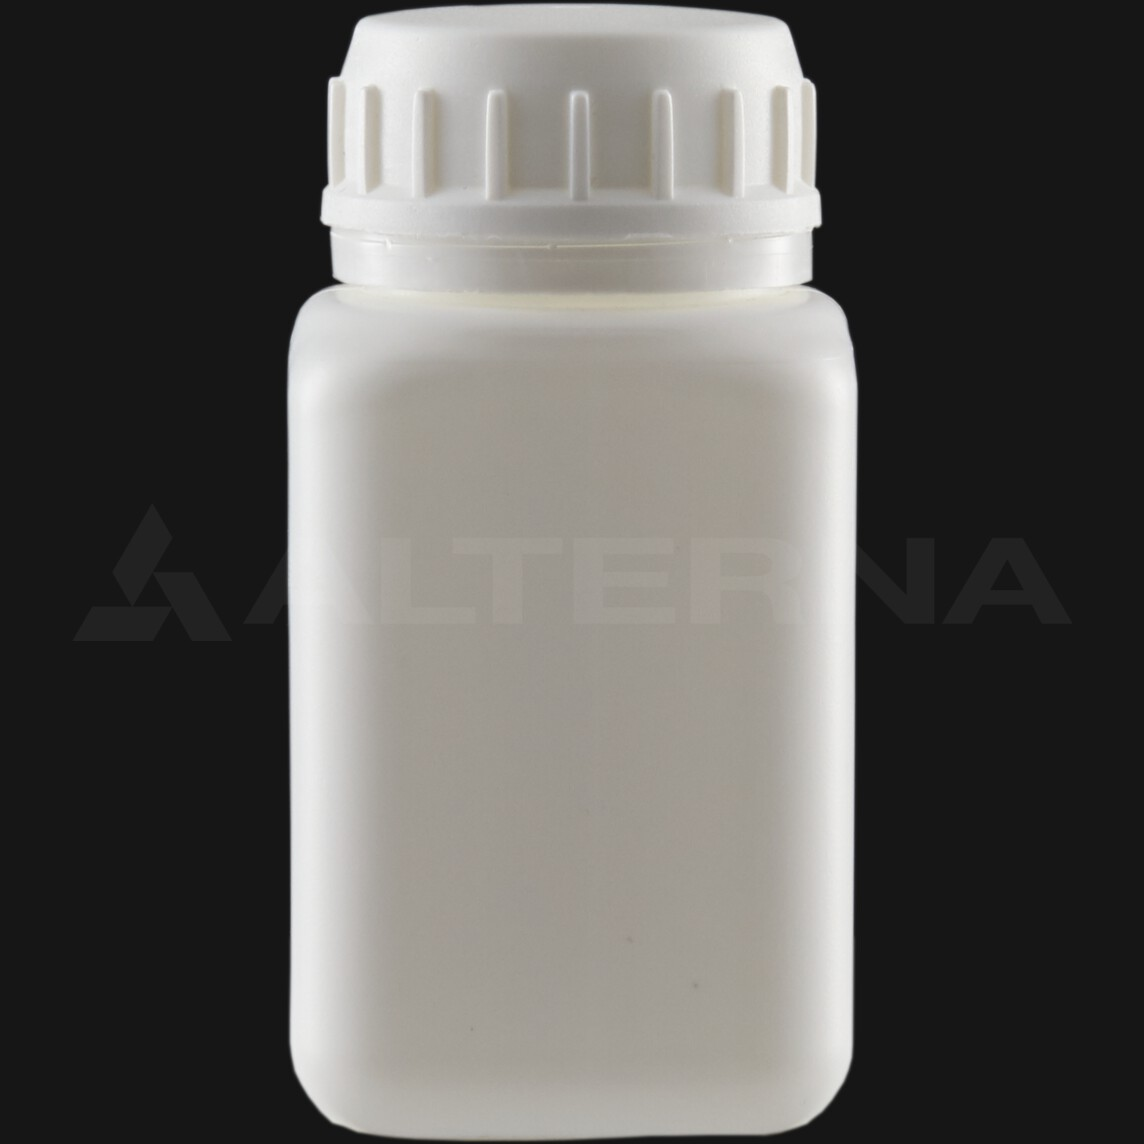 100 ml HDPE Square Bottle with 38 mm Foam Seal Vented Secure Cap